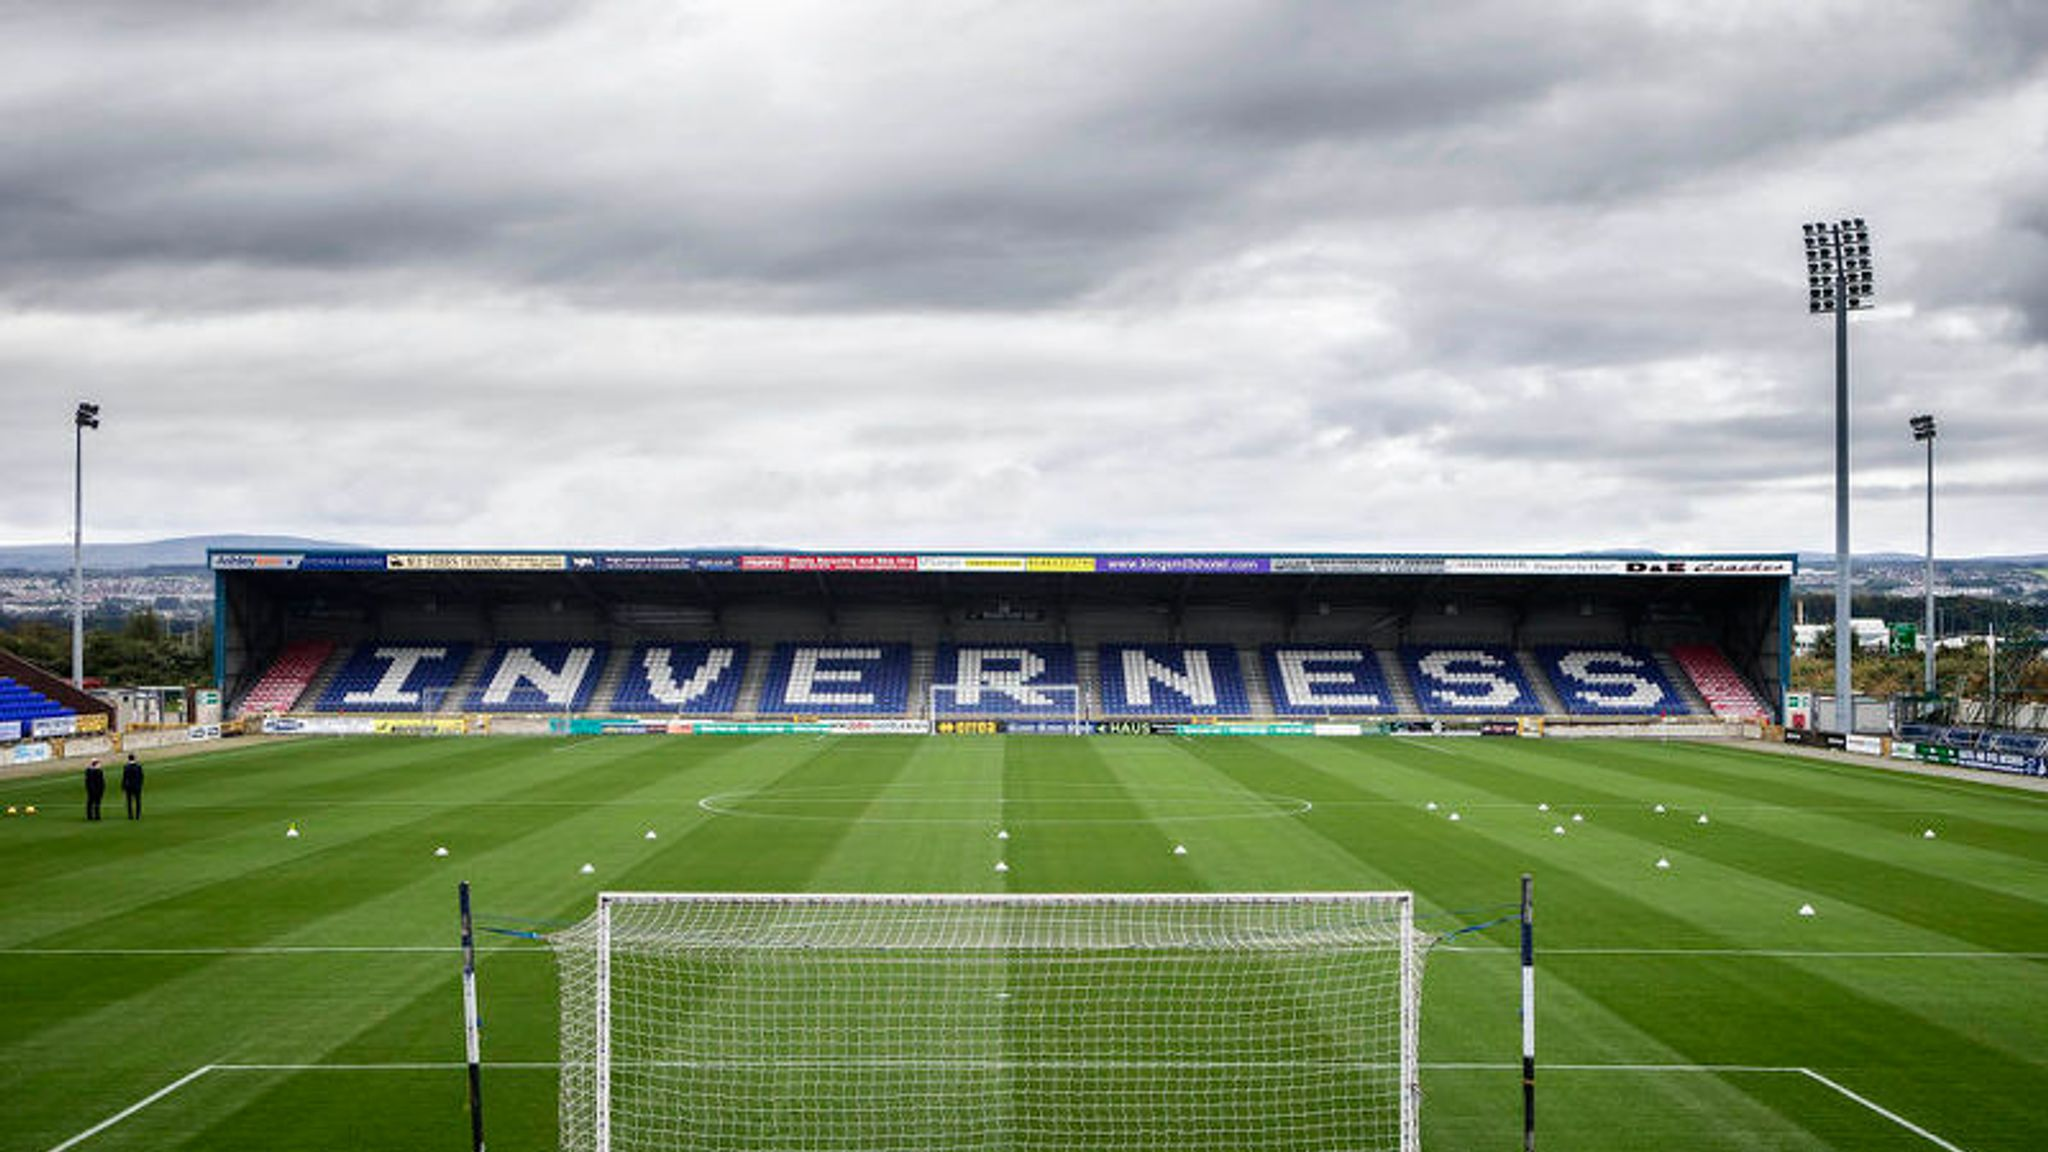 Inverness Caledonian Thistle to hold EGM in bid to raise new investment